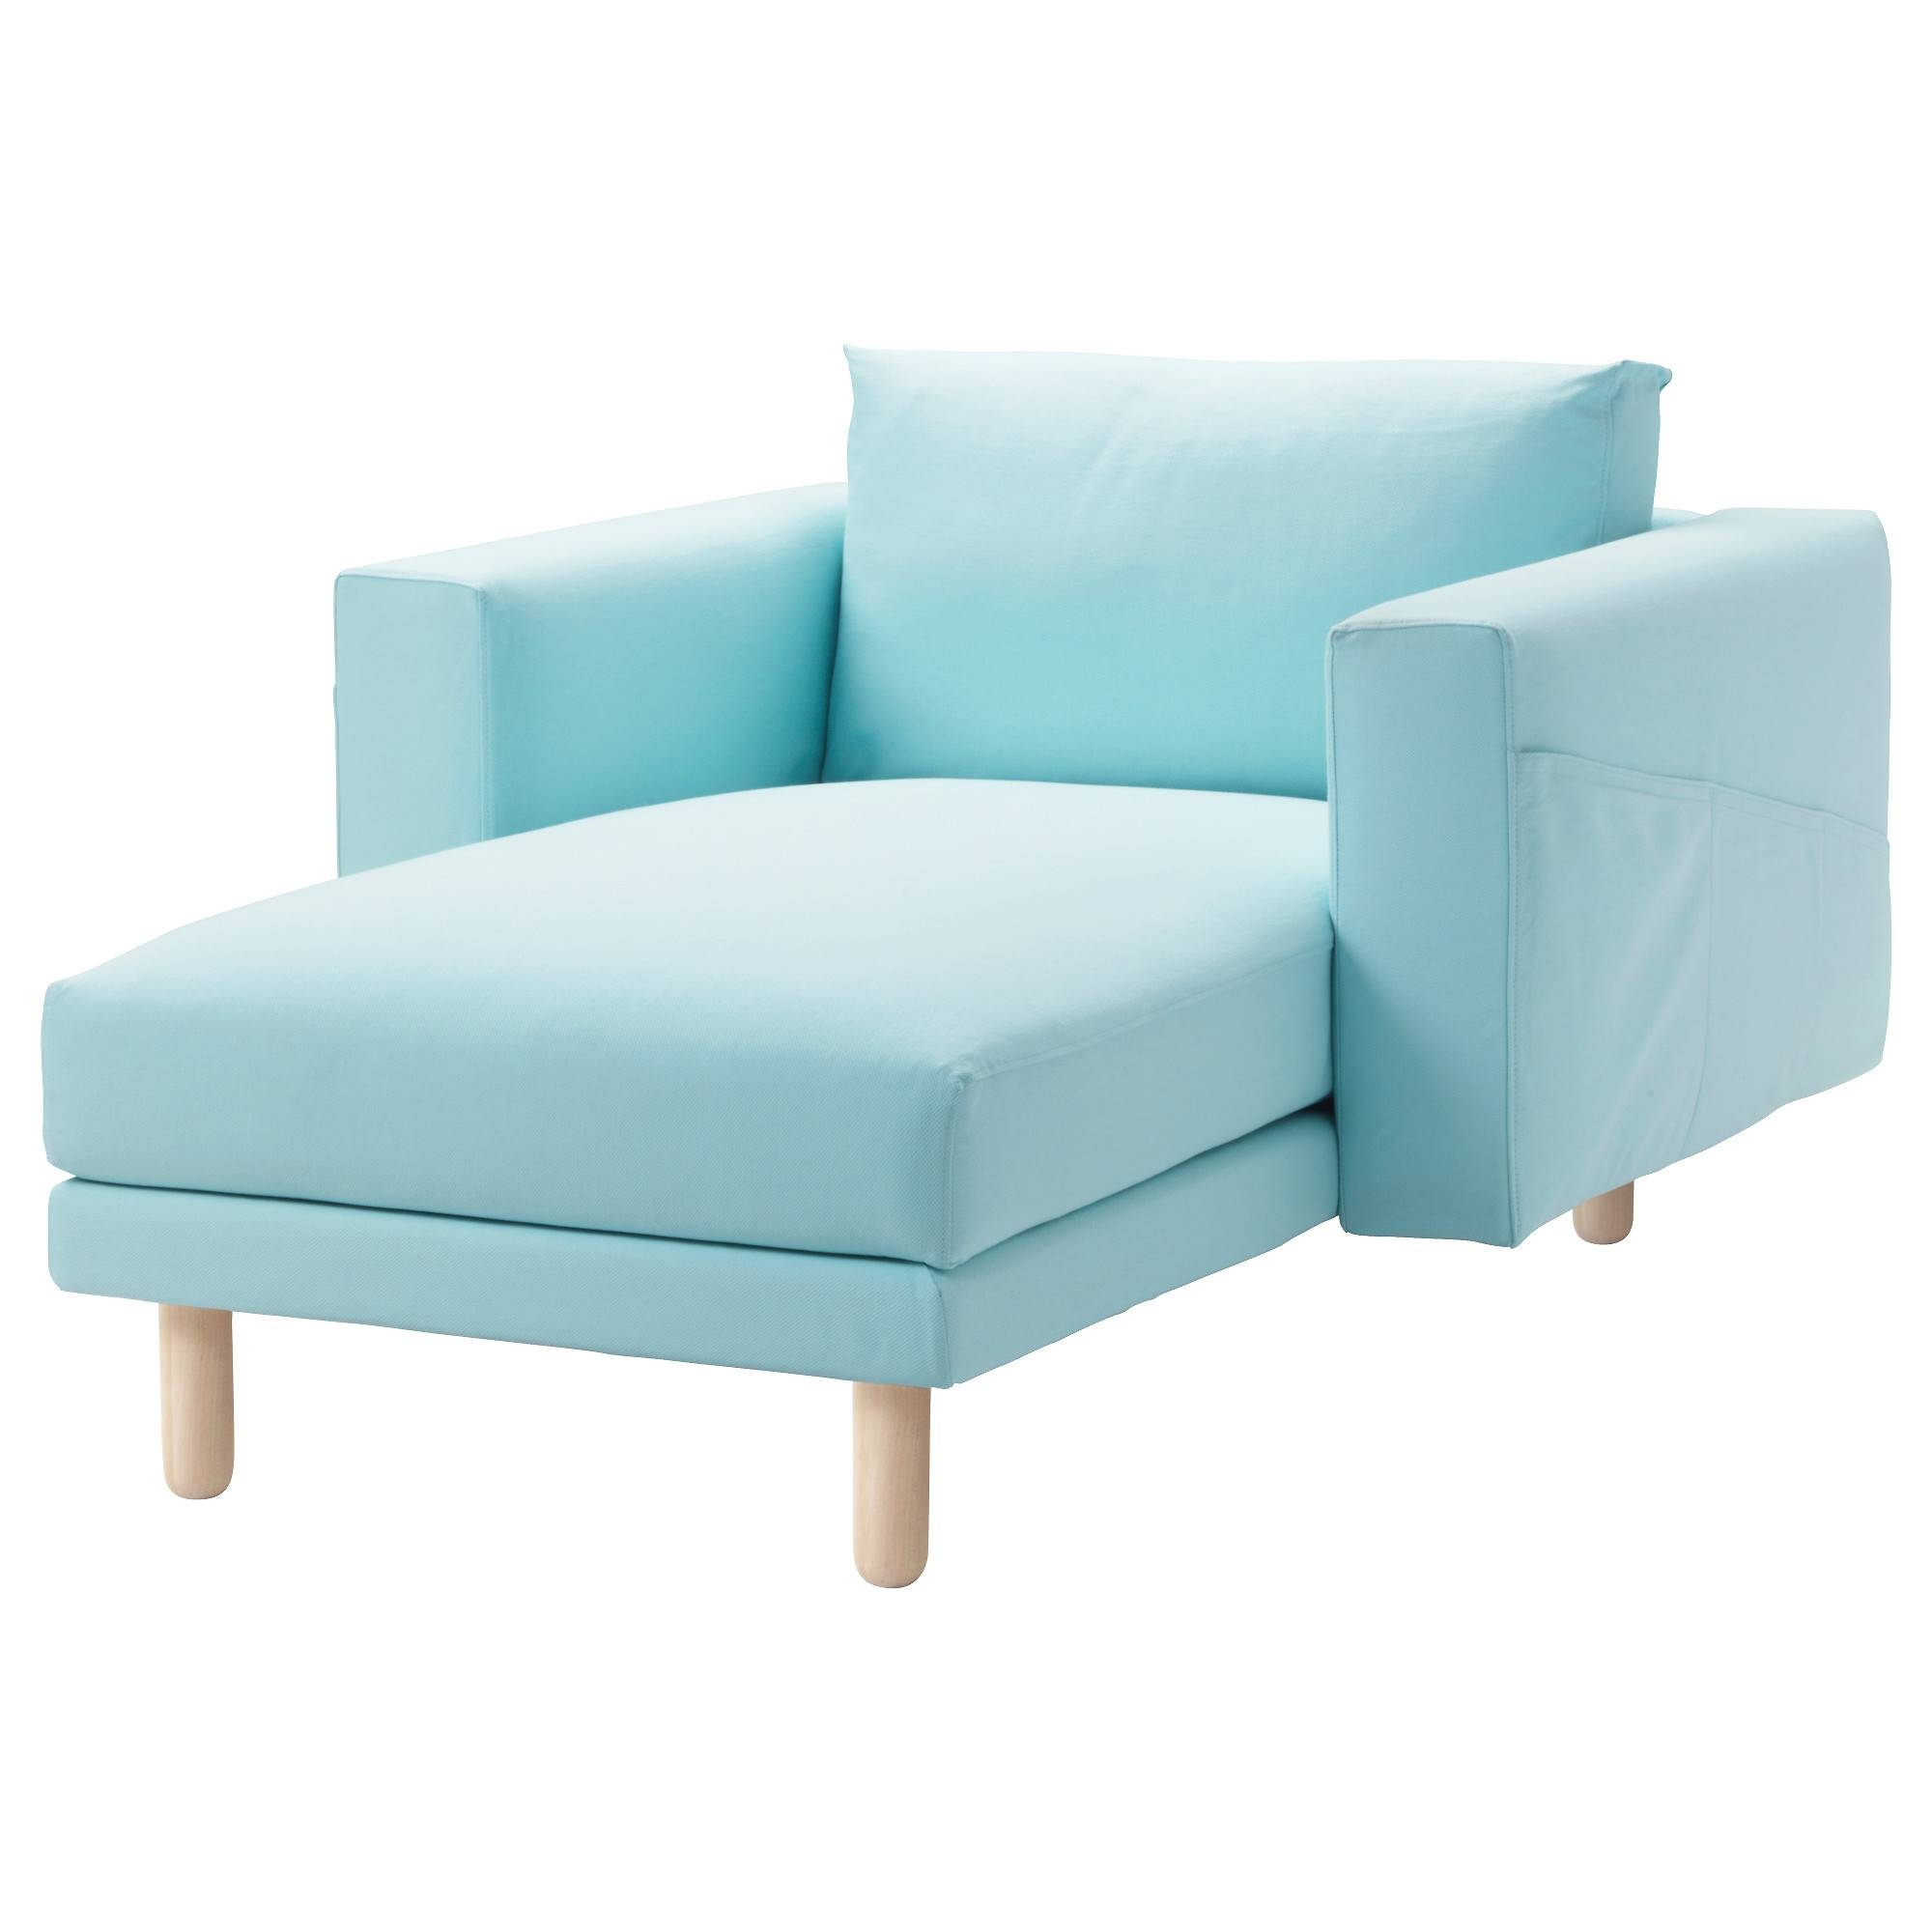 Furniture: Stunning Ikea Karlstad Sofa Cover For Your Sofa Need inside Teal Sofa Slipcovers (Image 5 of 30)